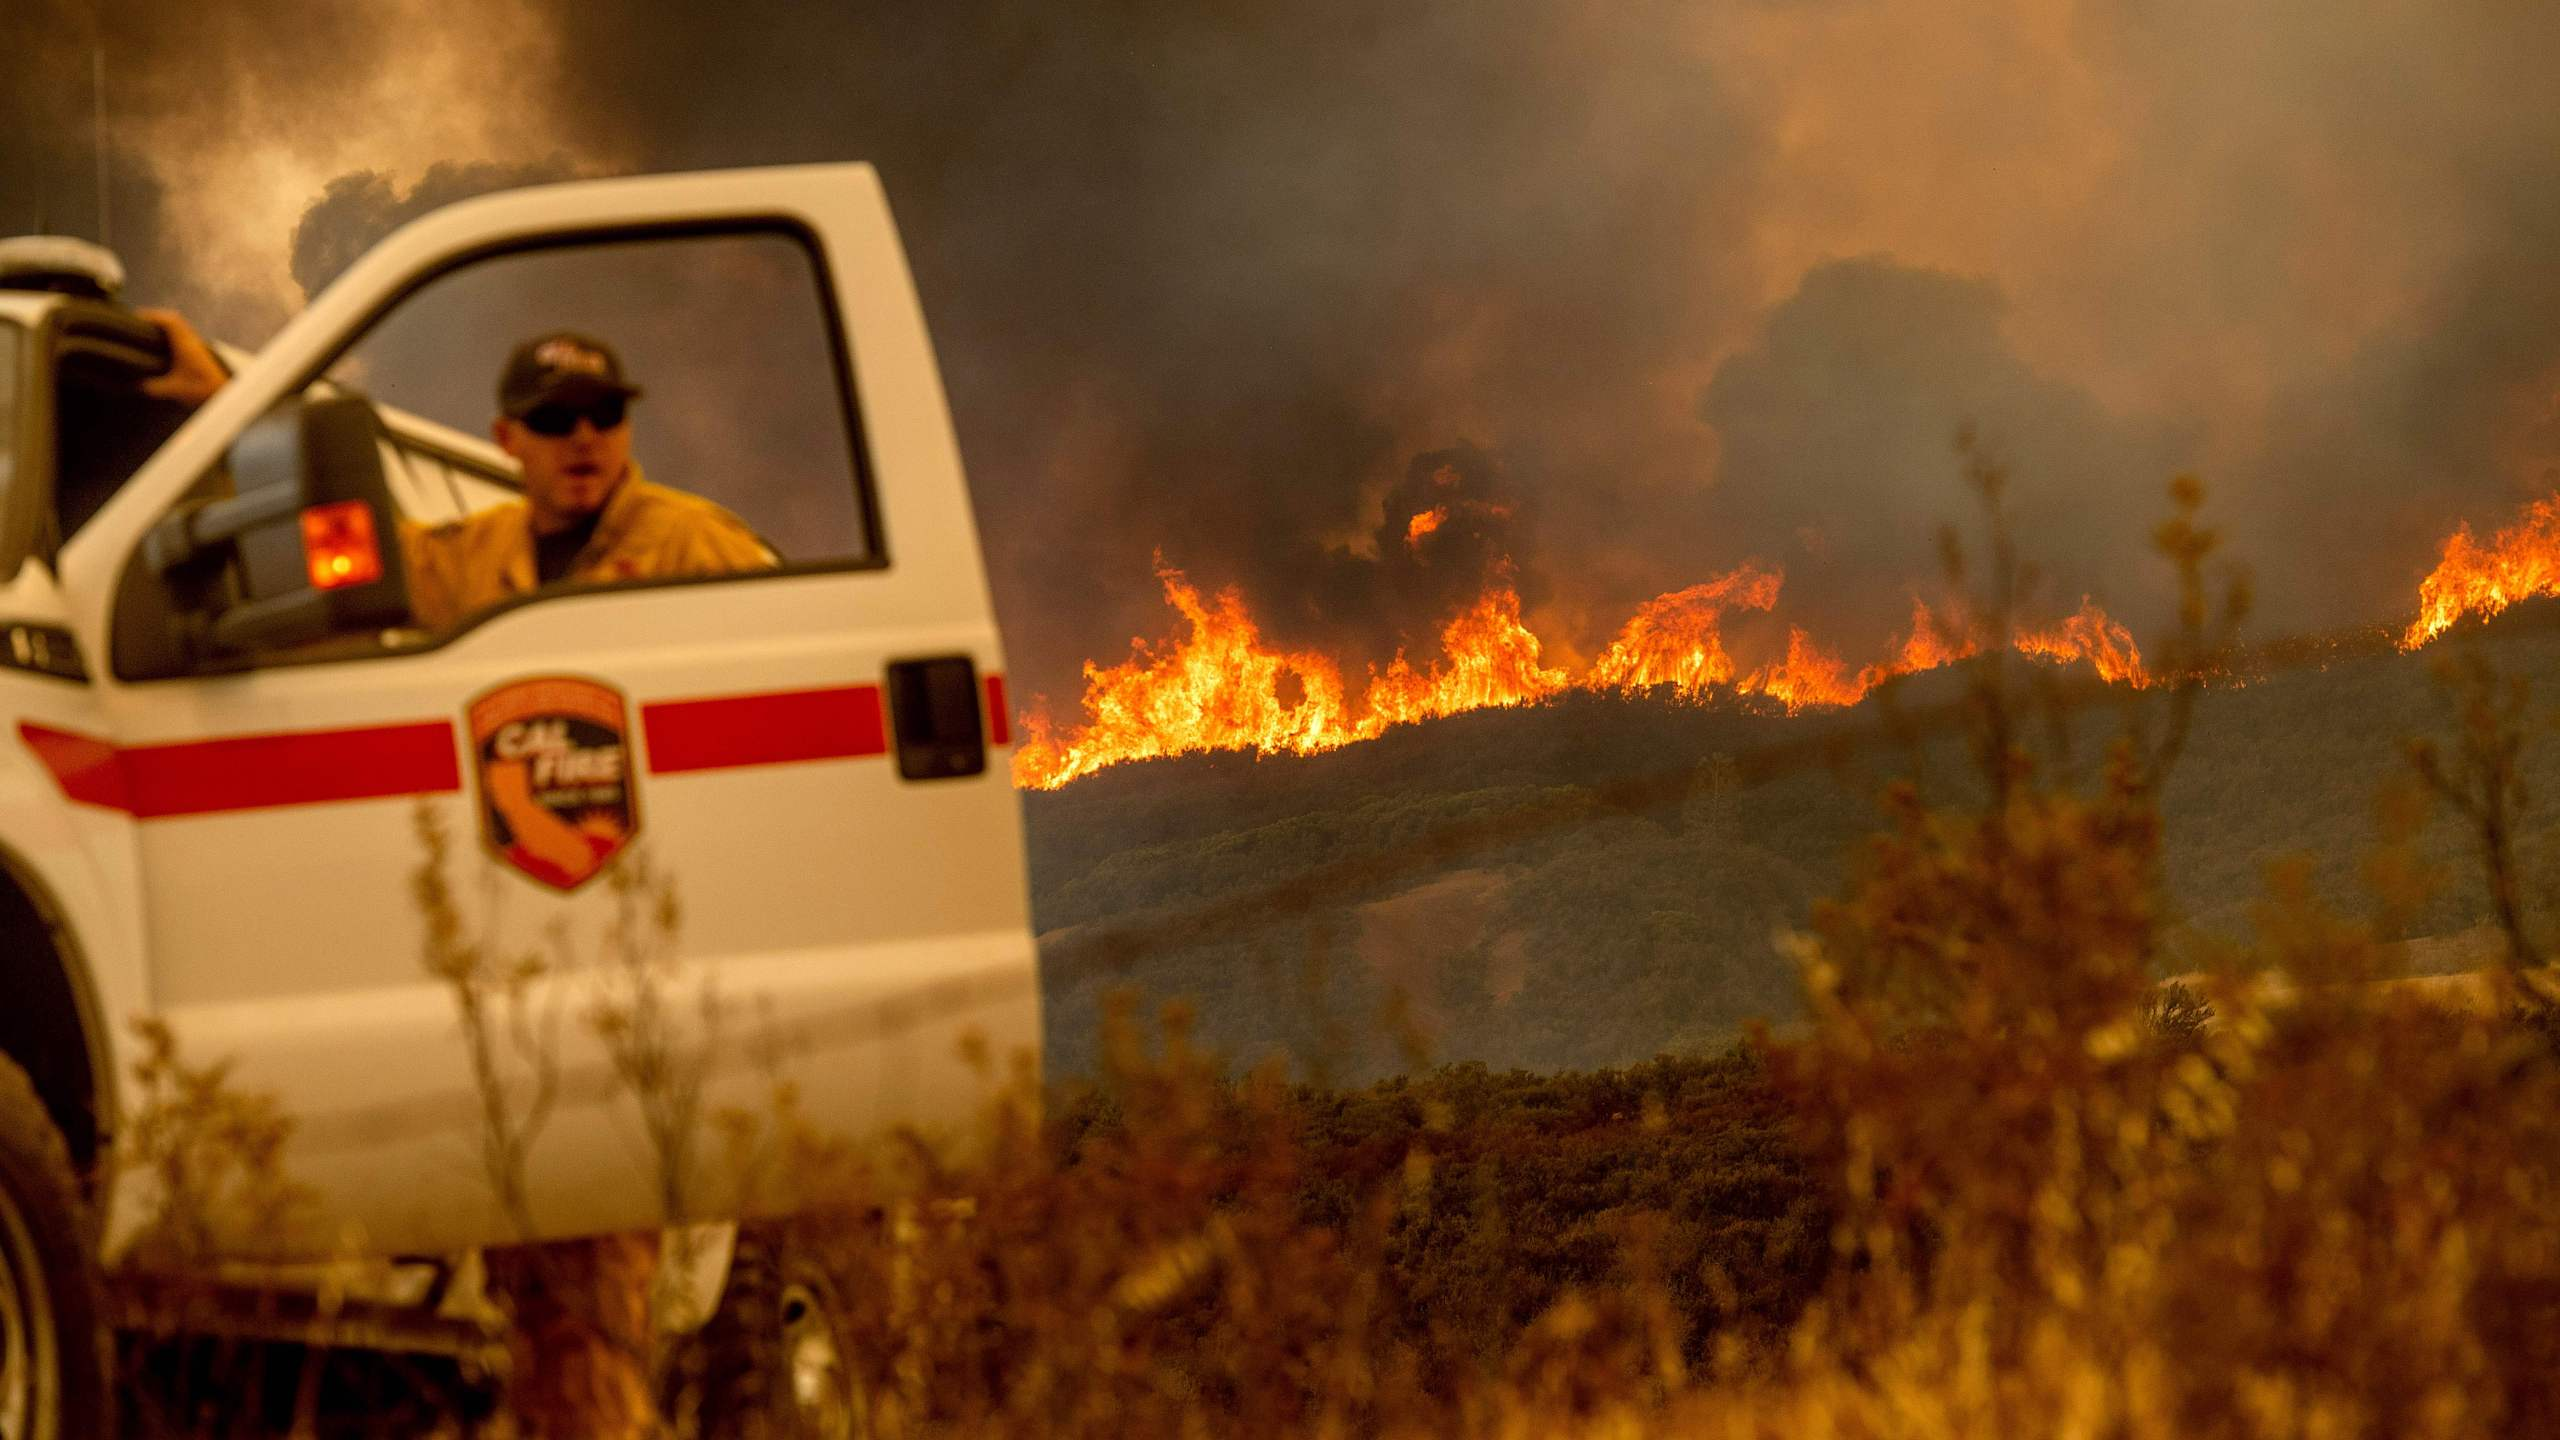 The Ranch Fire, part of the Mendocino Complex Fire, crests a ridge as Cal Fire Battalion Chief Matt Sully directs firefighting operations near Clearlake Oaks on Aug. 5, 2018. (Credit: Noah Berger / AFP / Getty Images)